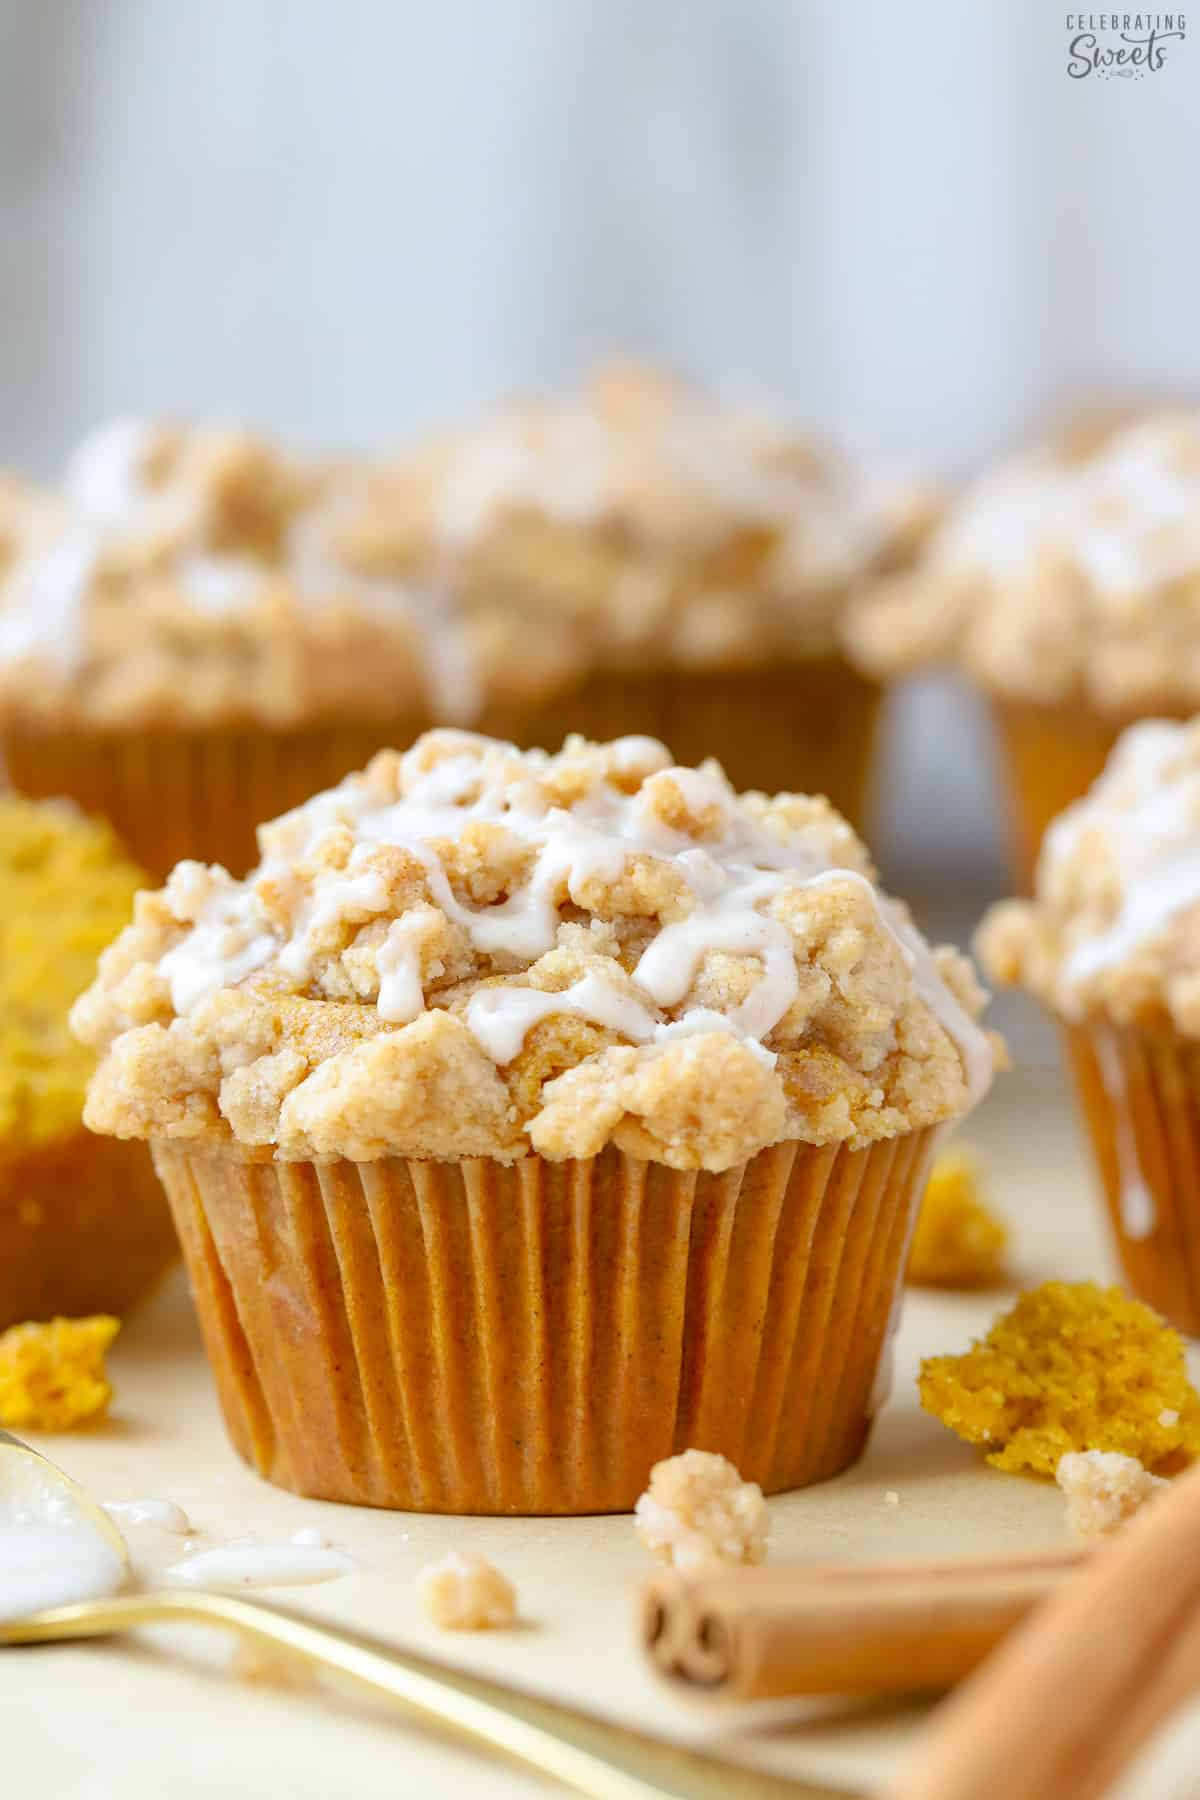 Pumpkin muffin on parchment paper surrounded by cinnamon sticks and a spoon of icing.